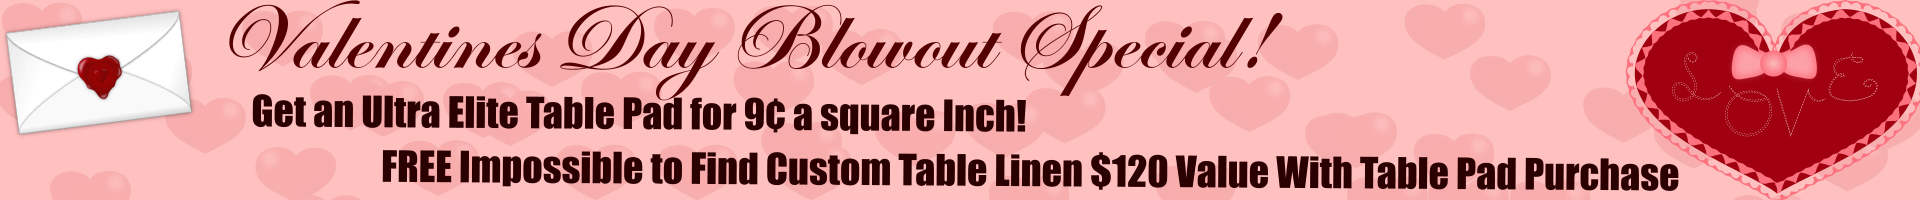 Valentine's Blowout Special - Get An Ultra Elite Table Pad For 9 Cents A Square Inch